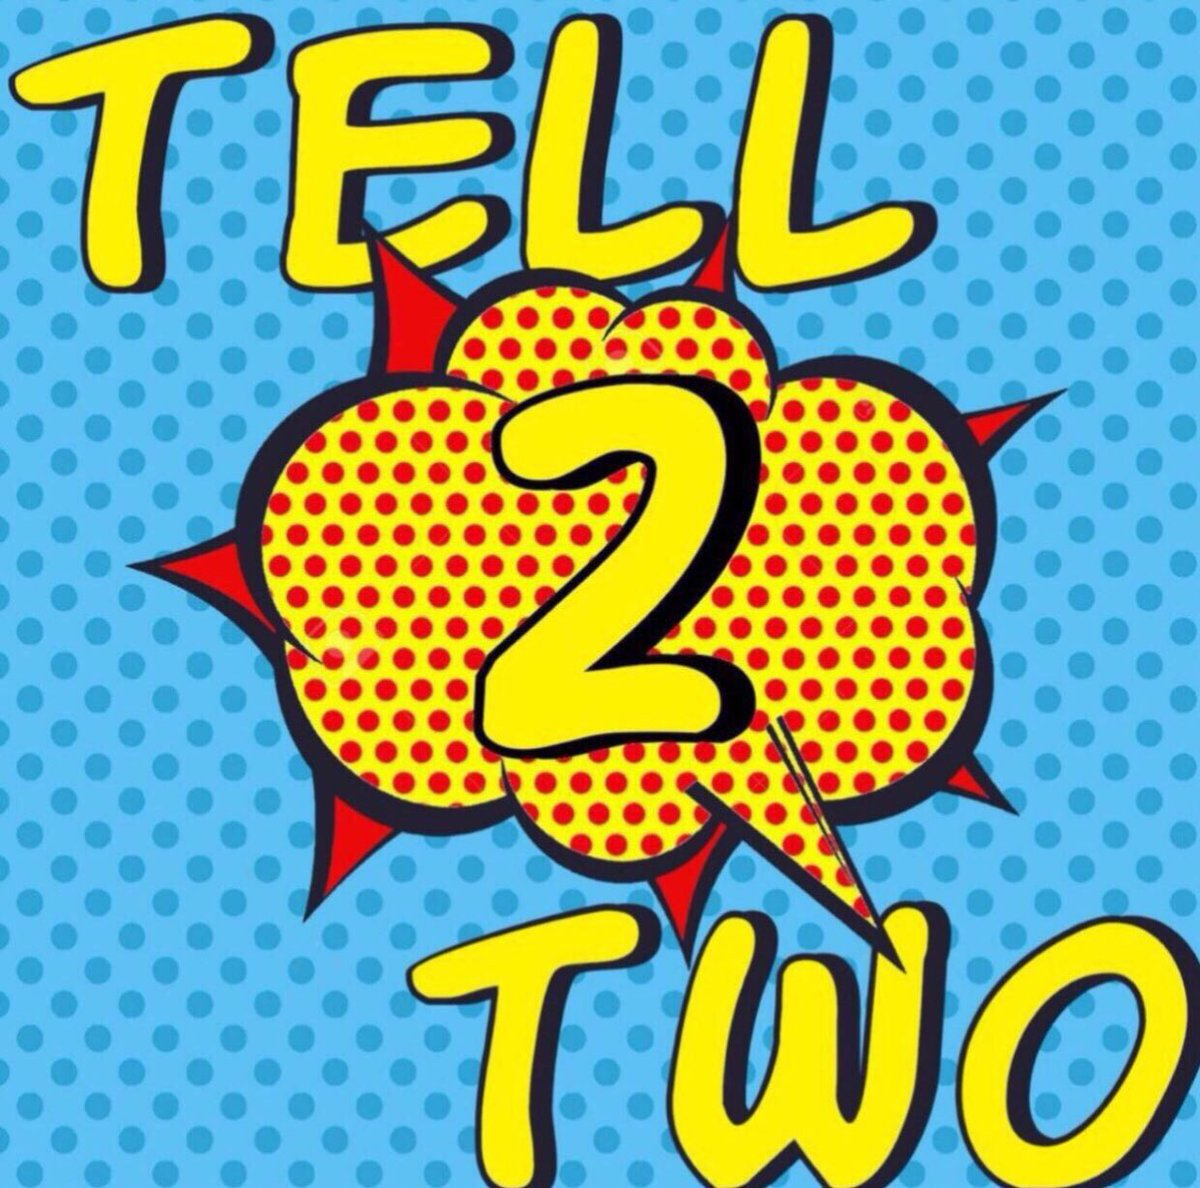 WHY do I keep including #tell2  I want YOU to talk more about how to #protect from #fraud  Start by telling 2 people in the real #world <br>http://pic.twitter.com/9UhGLo3yum